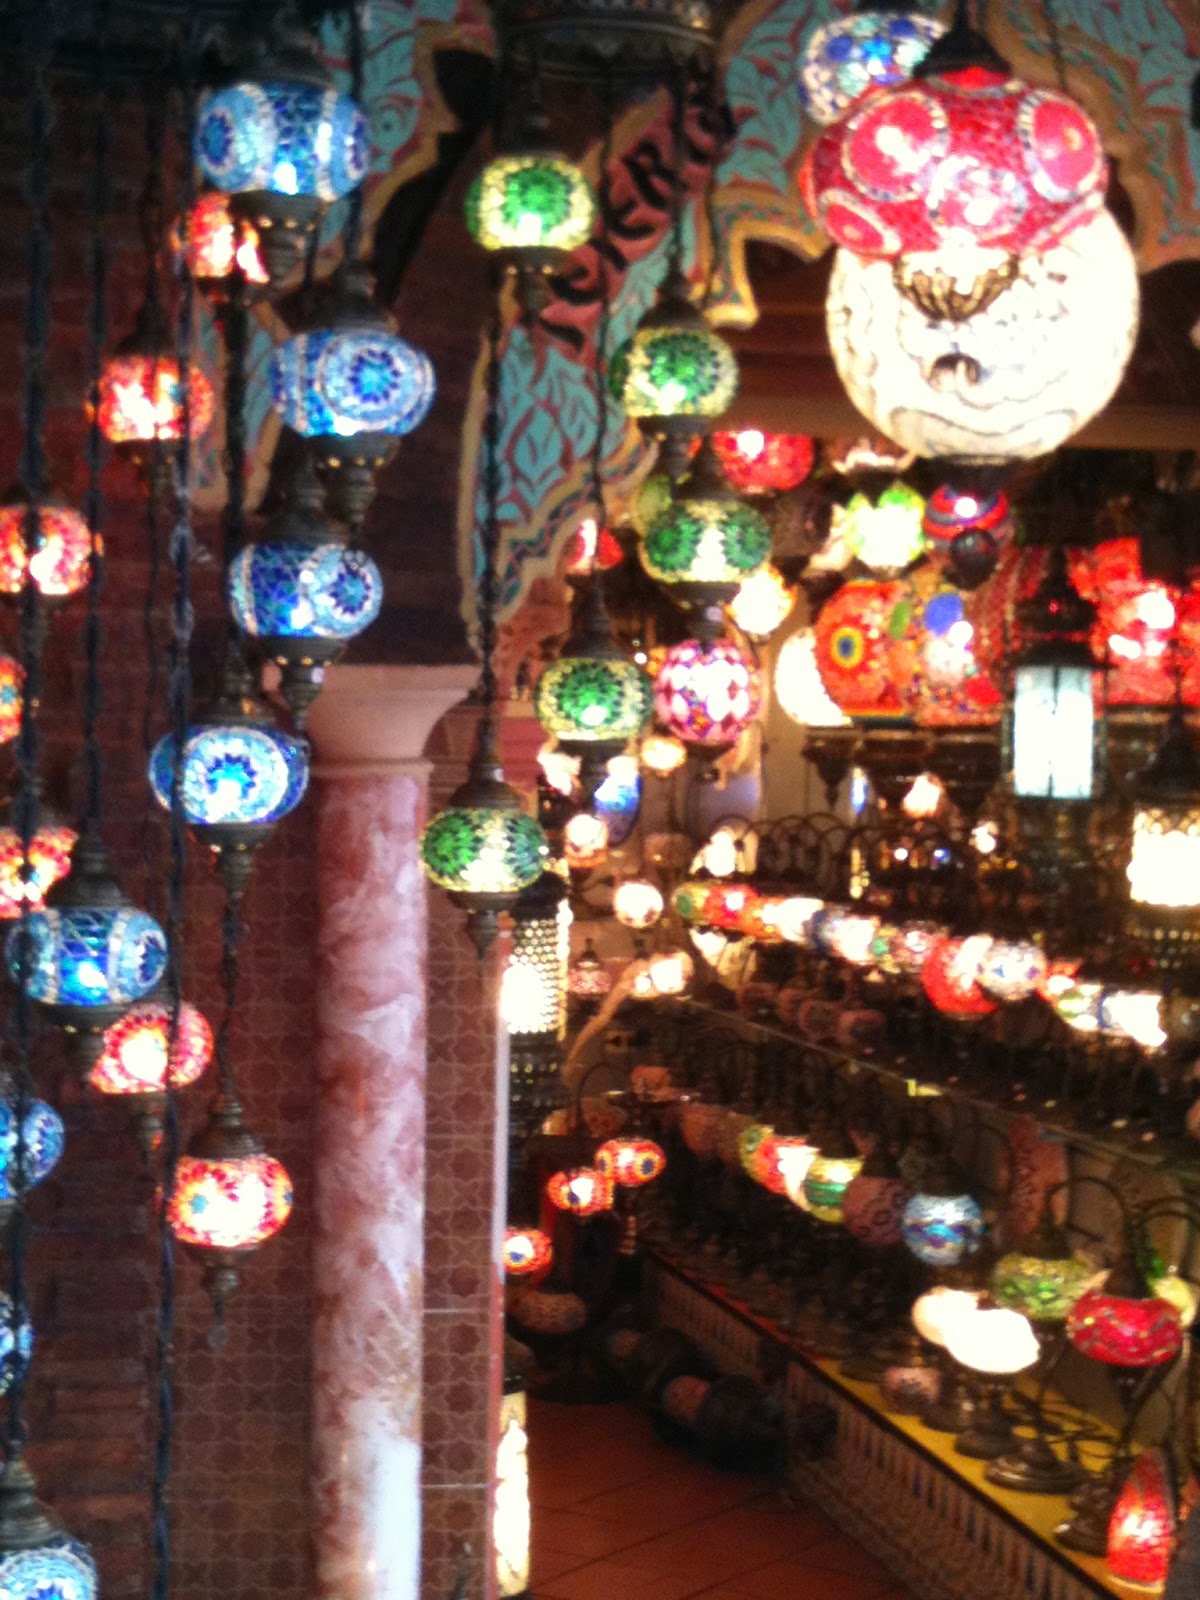 Granada - A lamp shop in the Albayzin